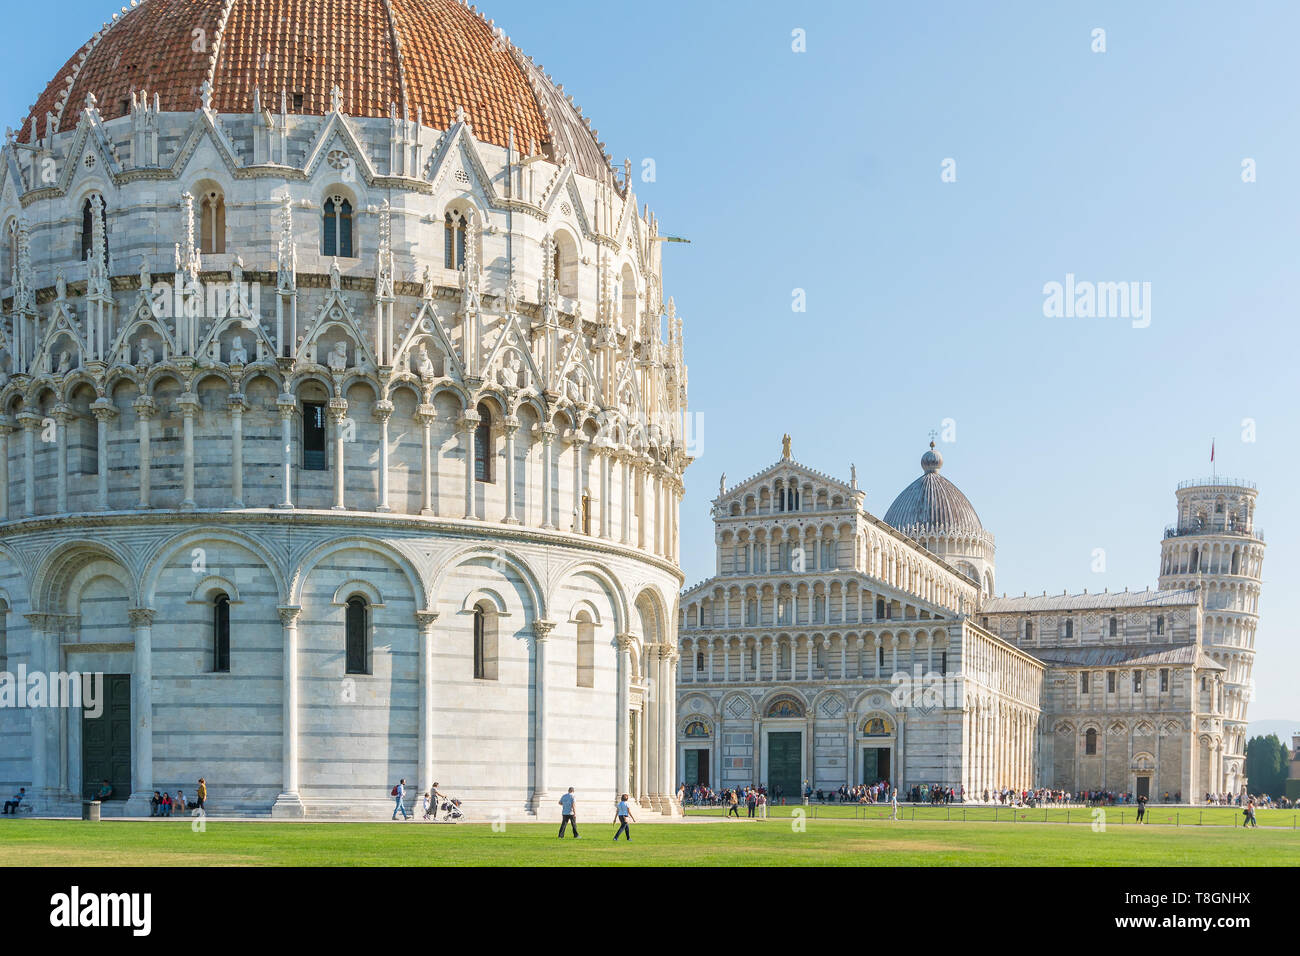 Pisa, Italy-October 21, 2018:tourists walk among the symbolic places of Pisa admiring the beauty and taking pictures during a sunny day - Stock Image